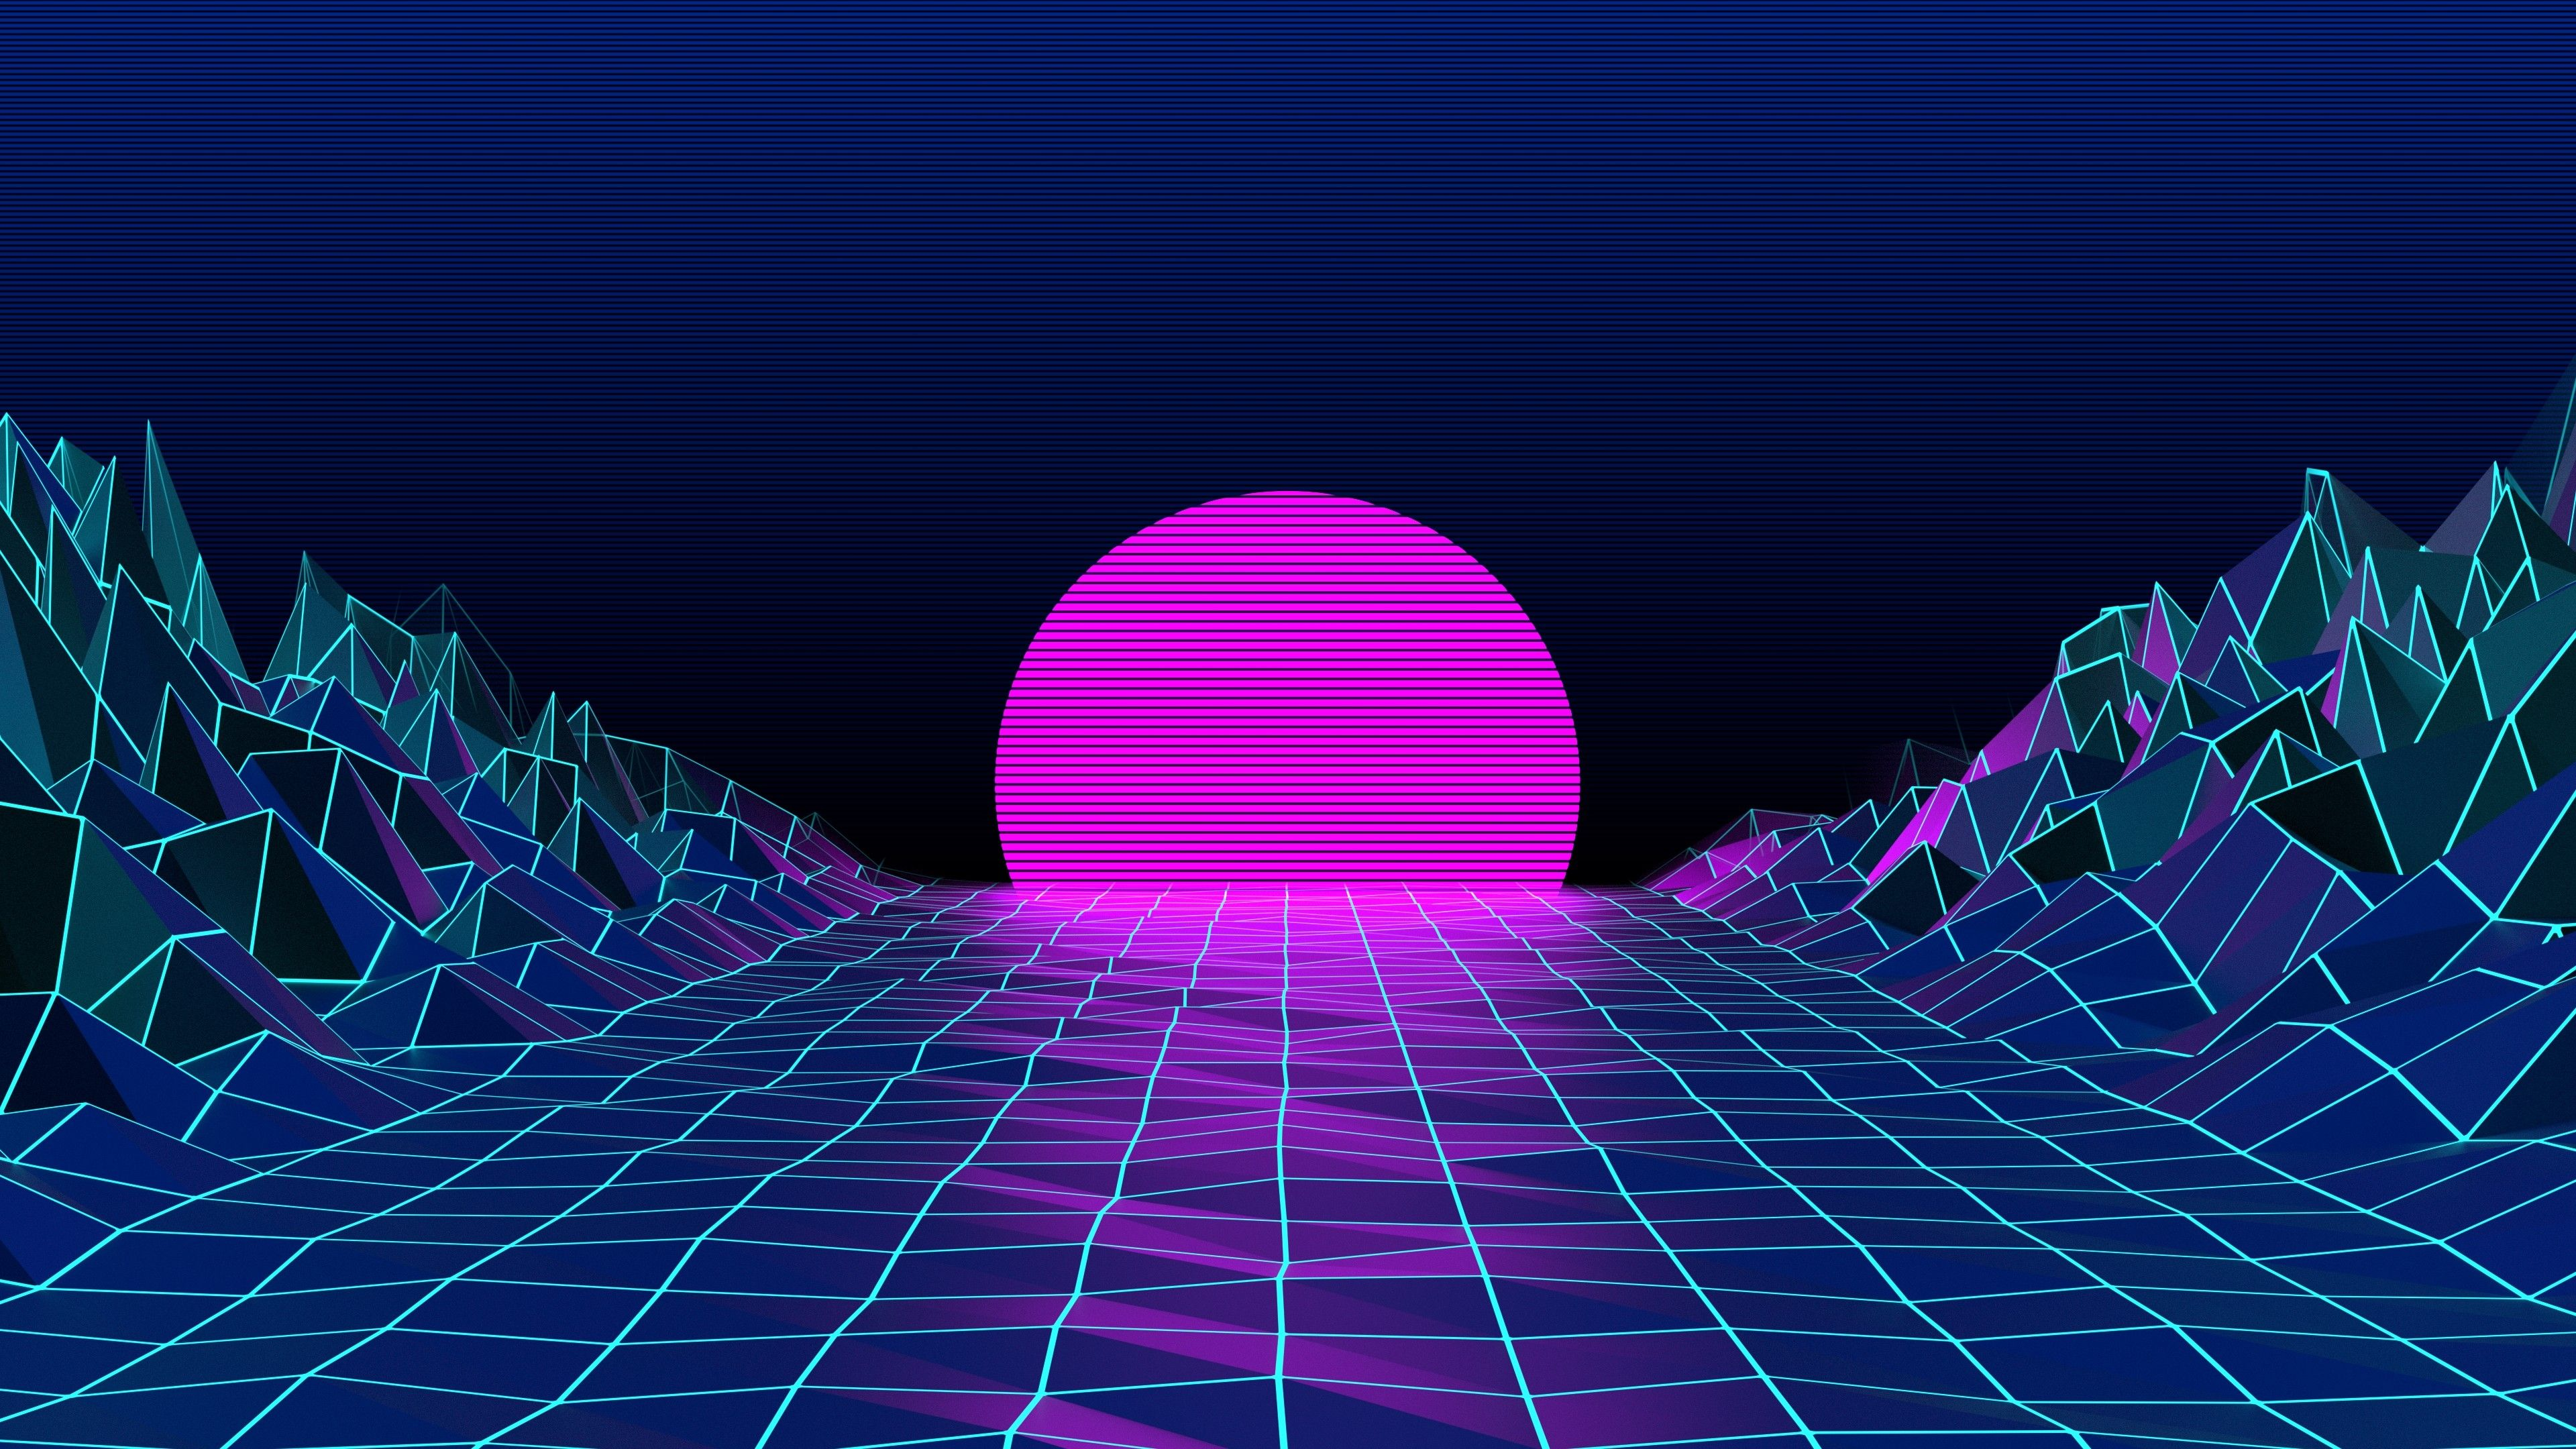 Aesthetic Computer Wallpapers Top Free Aesthetic Computer